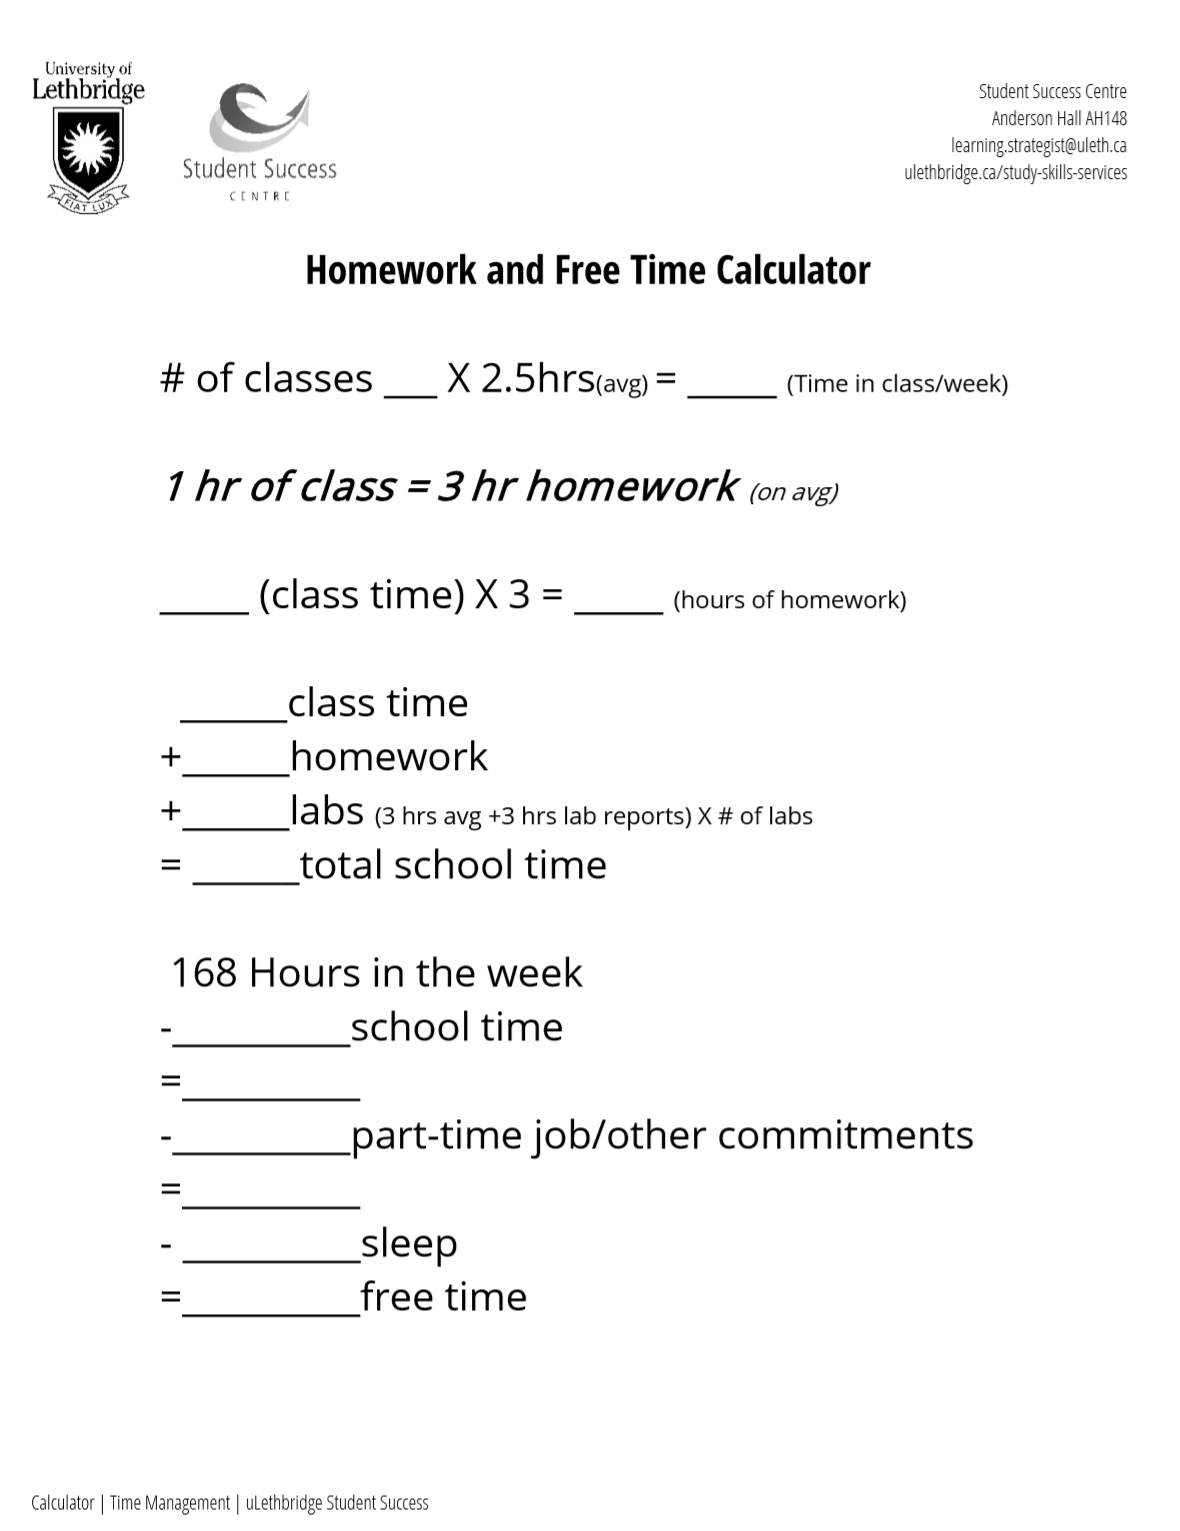 Homework And Free Time Calculator From The Student Success